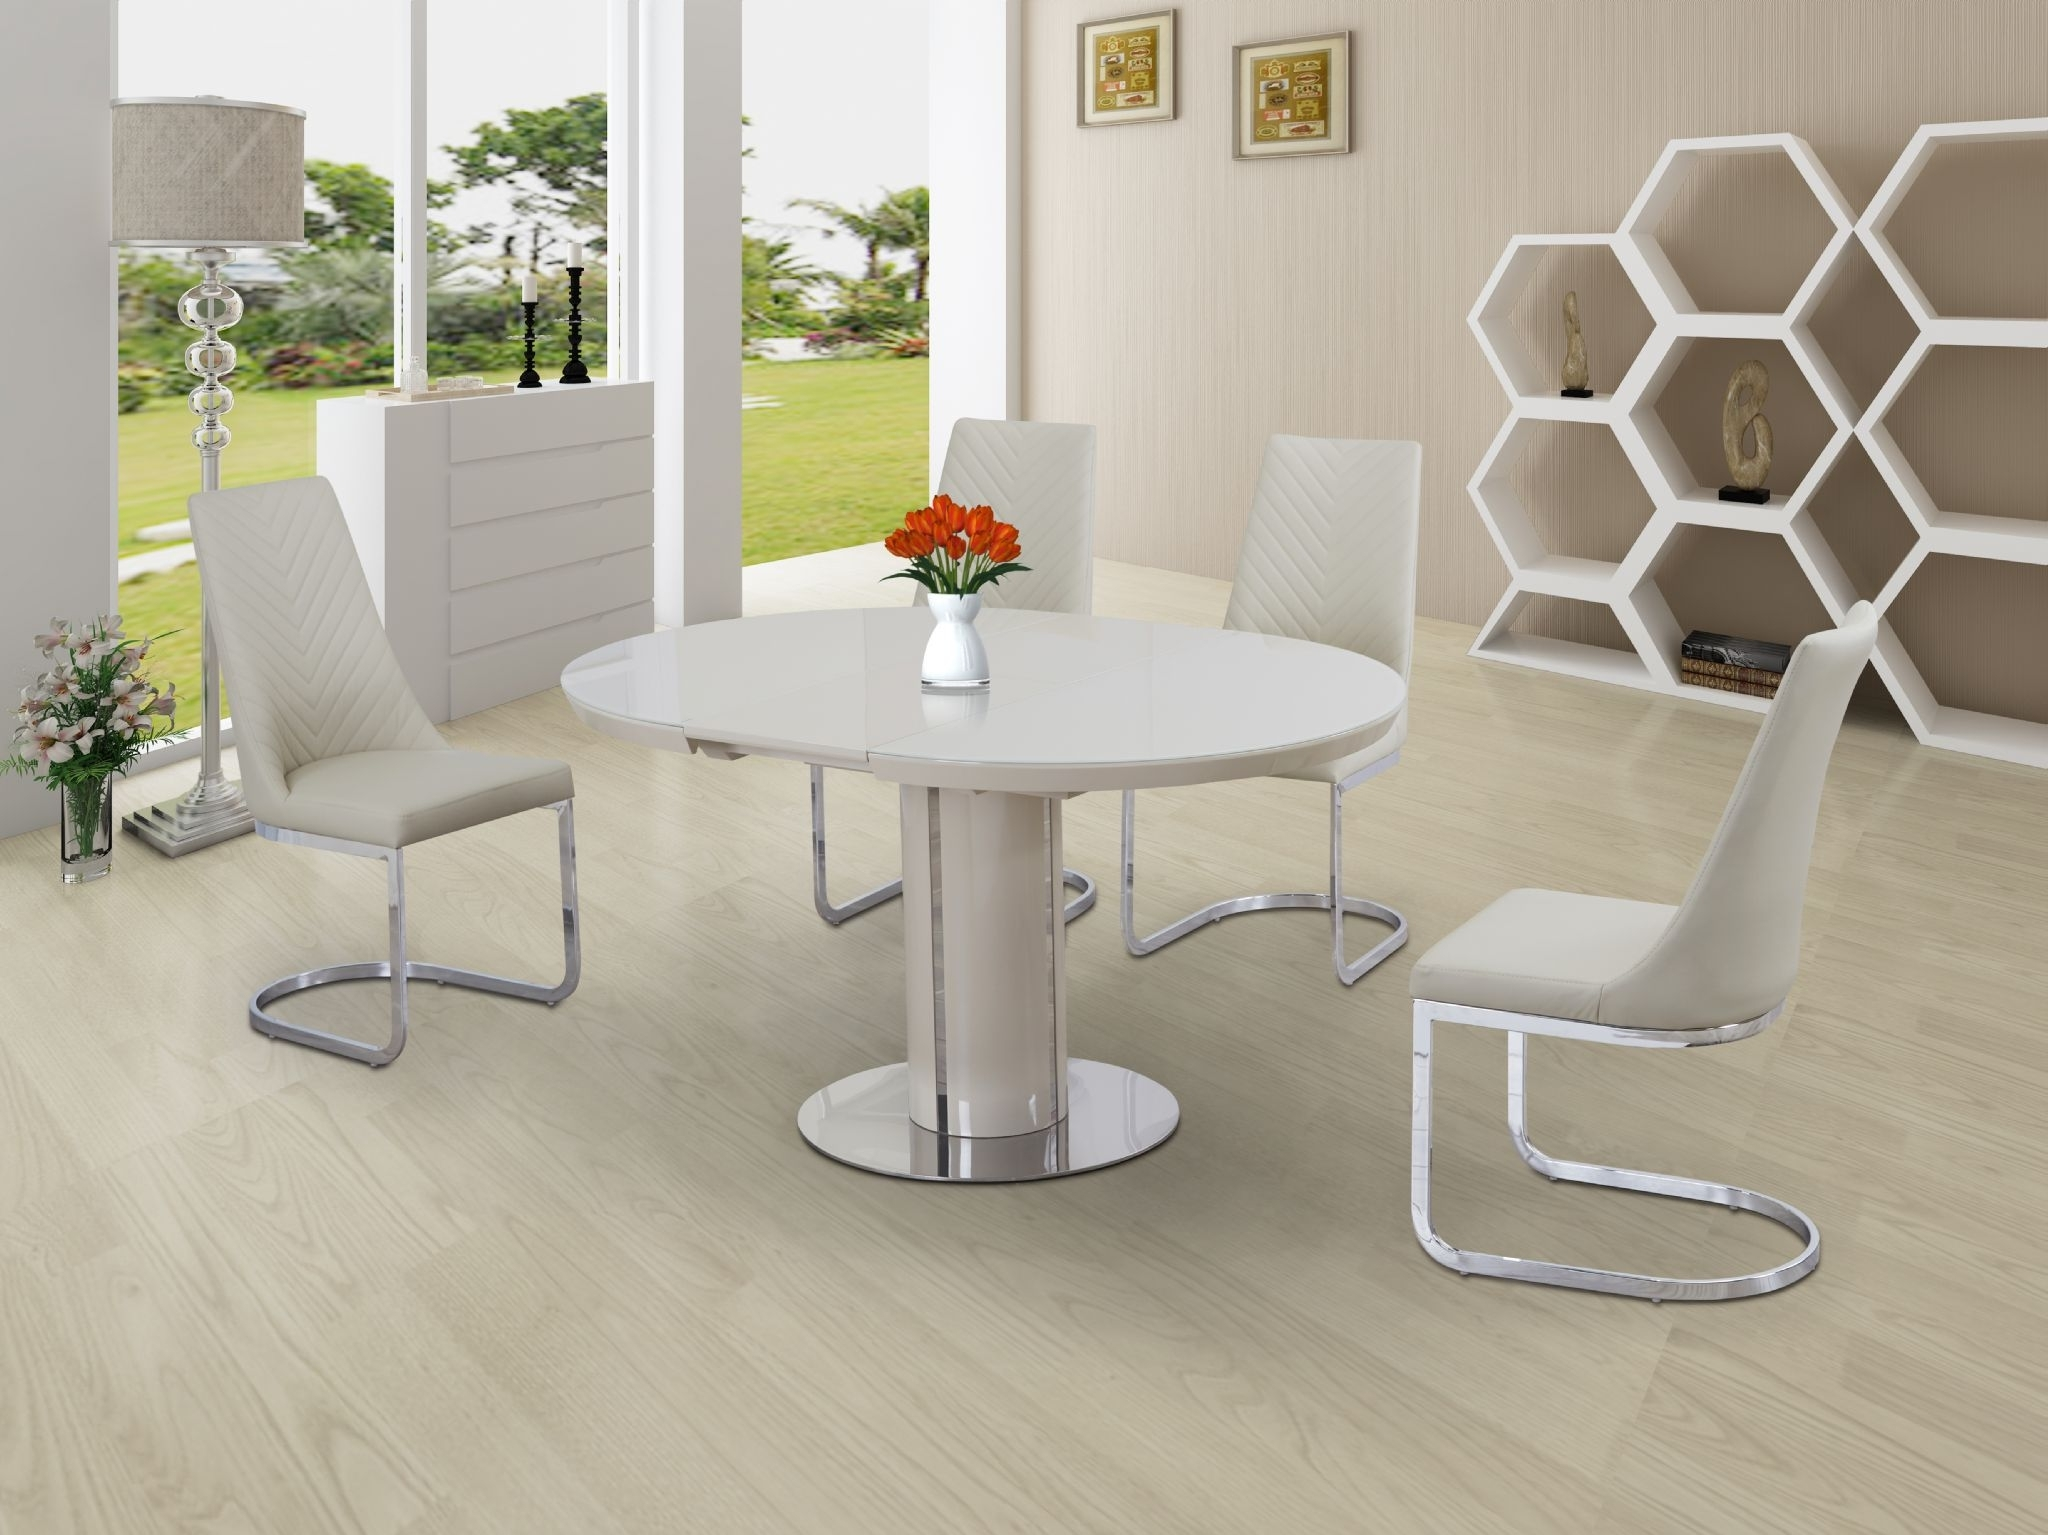 Best And Newest Small Extending Dining Tables Pertaining To Buy Cream Small Round Extendable Dining Table Today (Gallery 10 of 25)